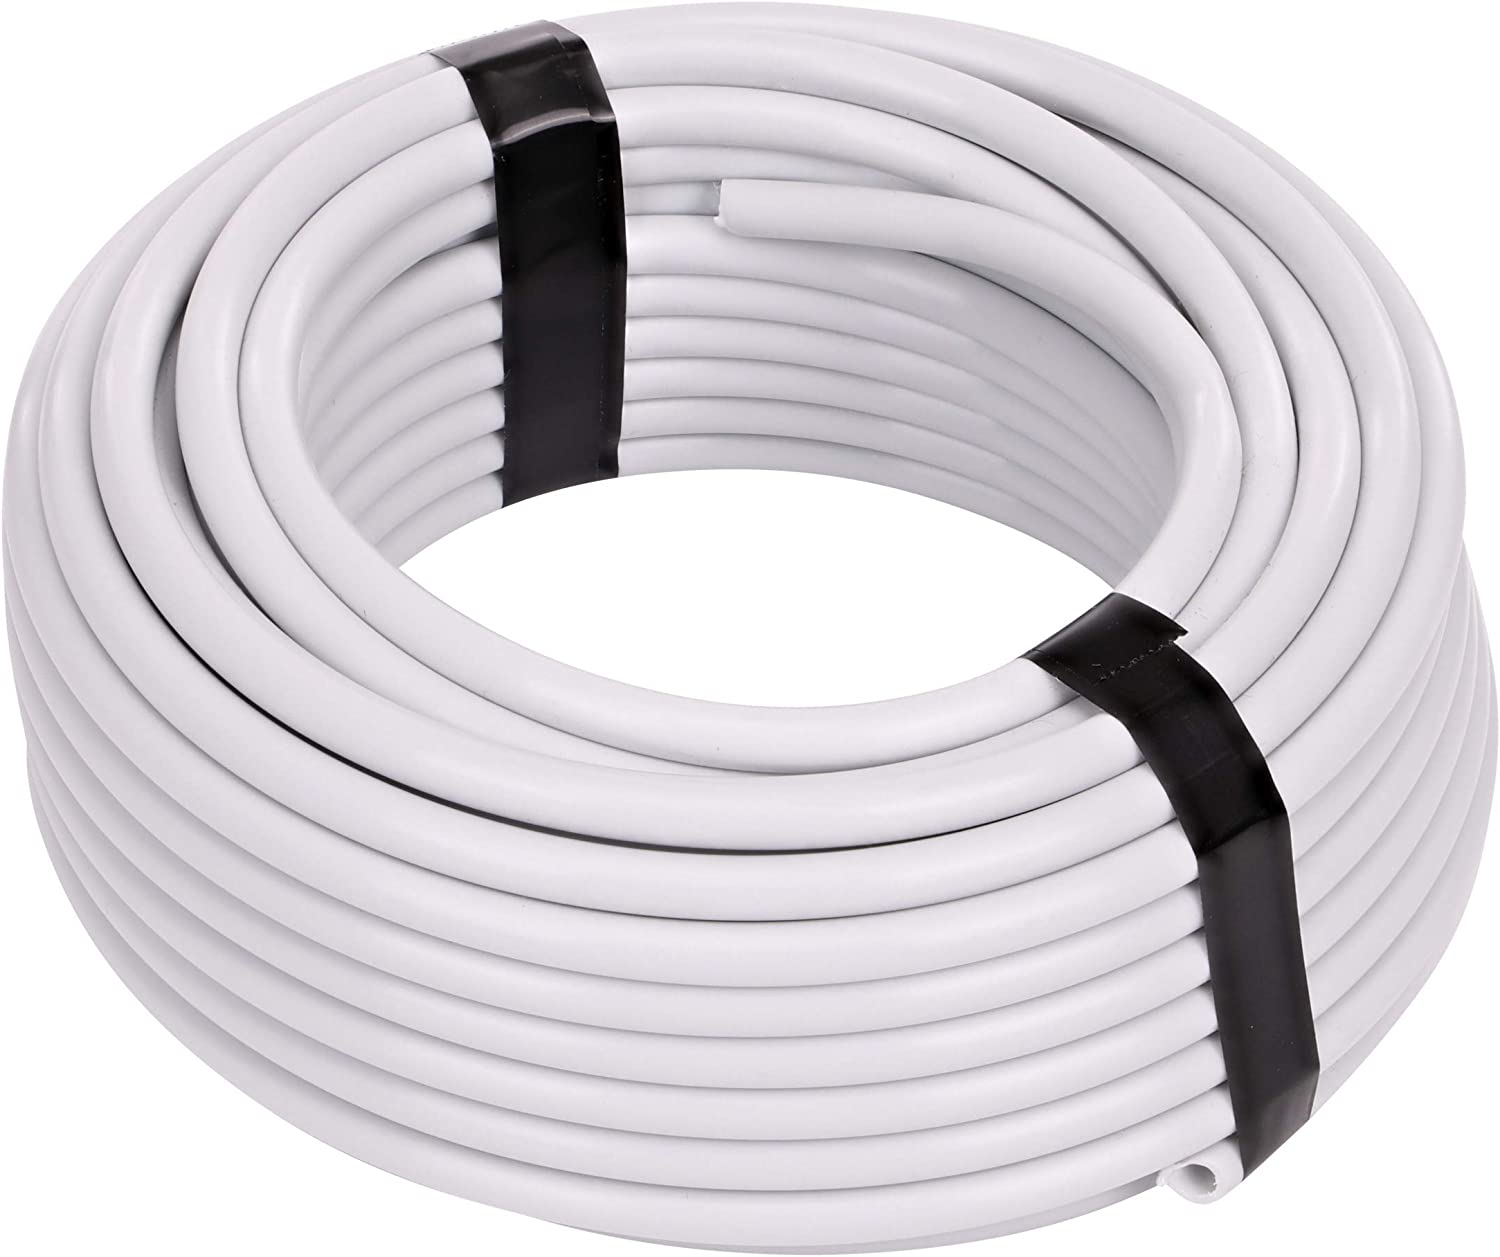 N+A ZILIM 100ft 1//4 inch Blank Distribution Tubing Drip Irrigation Hose Garden Watering Tube Line 100/'